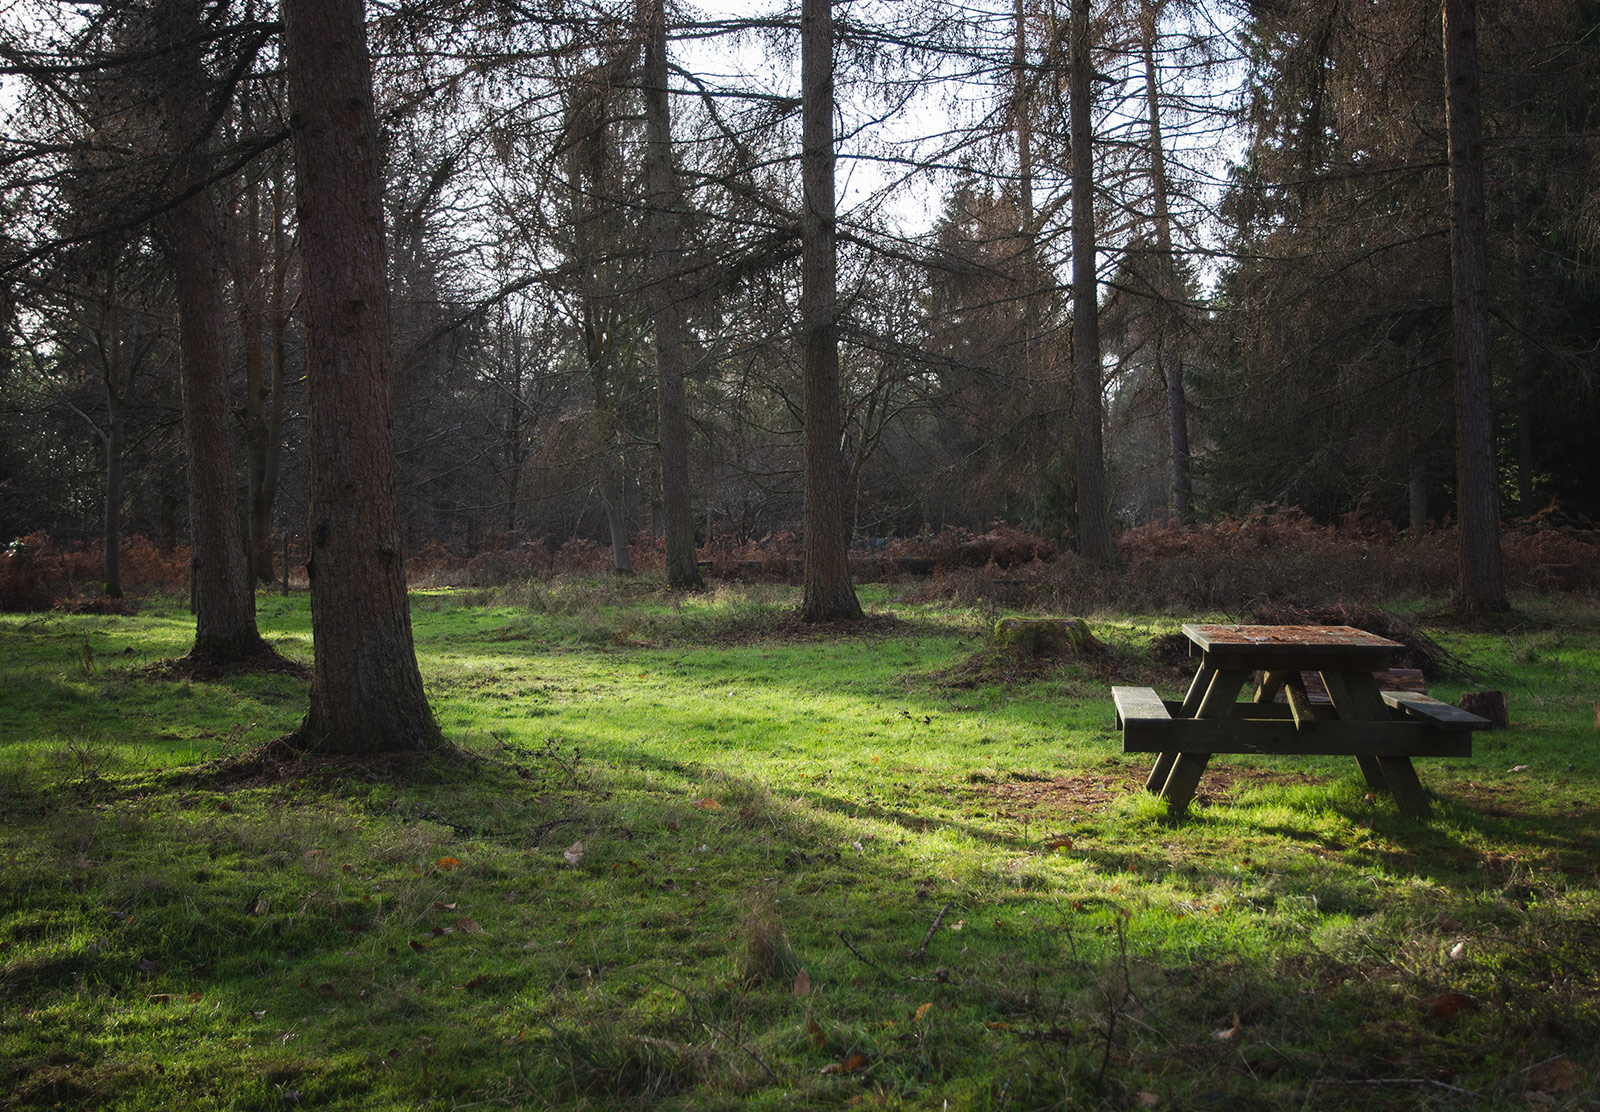 Picnic bench in the sun